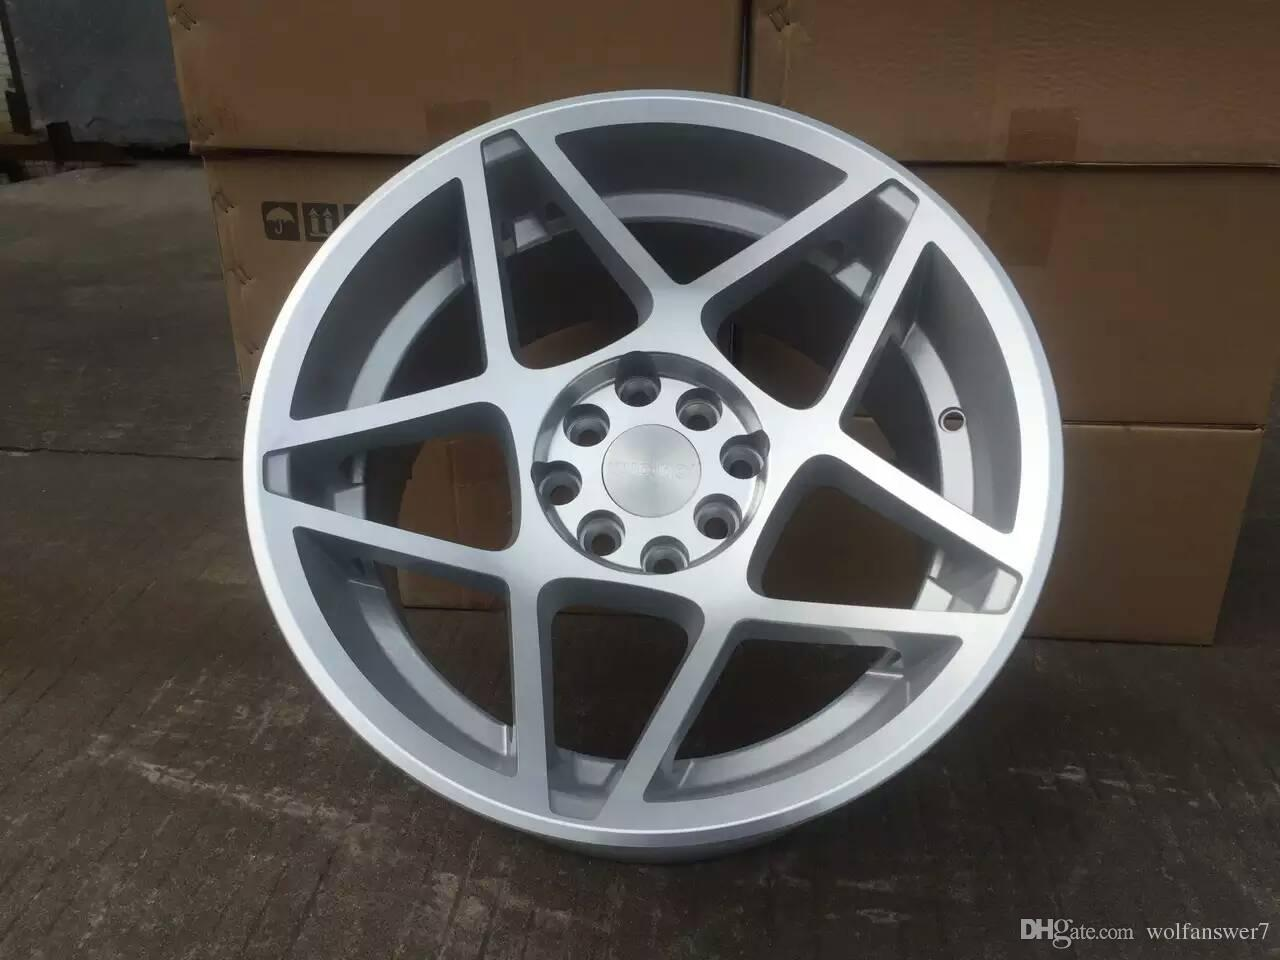 2020 New Design Auto Parts Alloy Wheels Alloy Rim 3sdm 18inch 5x112 For Toyota Audi Benz Cars 3sdm Iso9001 Te37 Hre Rotiform High Performance From Wolfanswer7 77 39 Dhgate Com